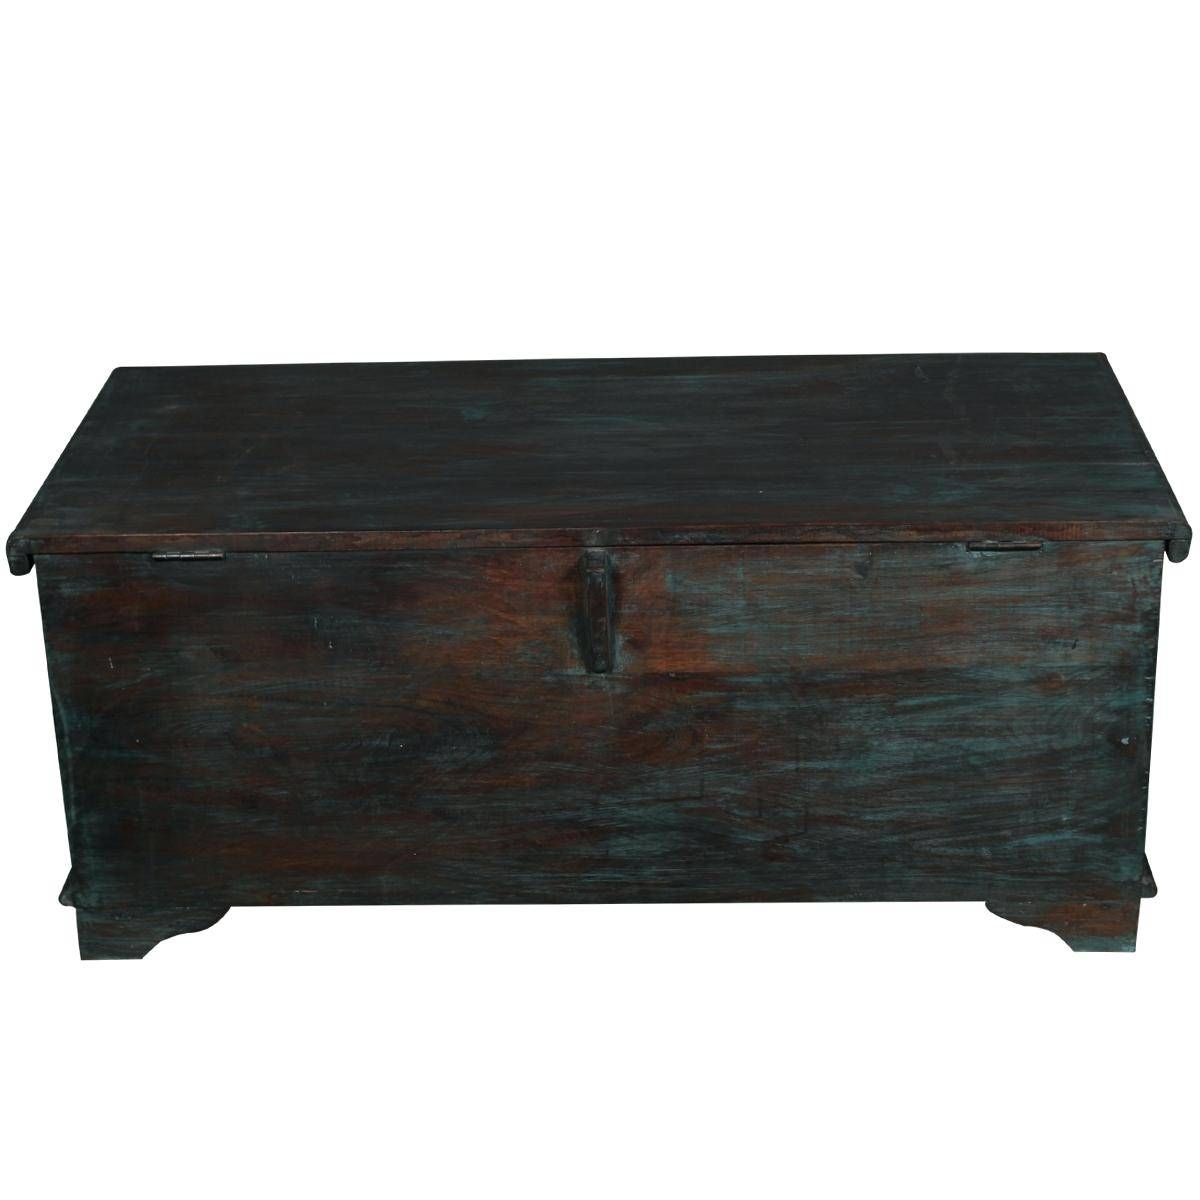 Coffee Table ~ Dark Wood Chest Coffee Table Modern Tables Steamer throughout Dark Wood Chest Coffee Tables (Image 1 of 30)